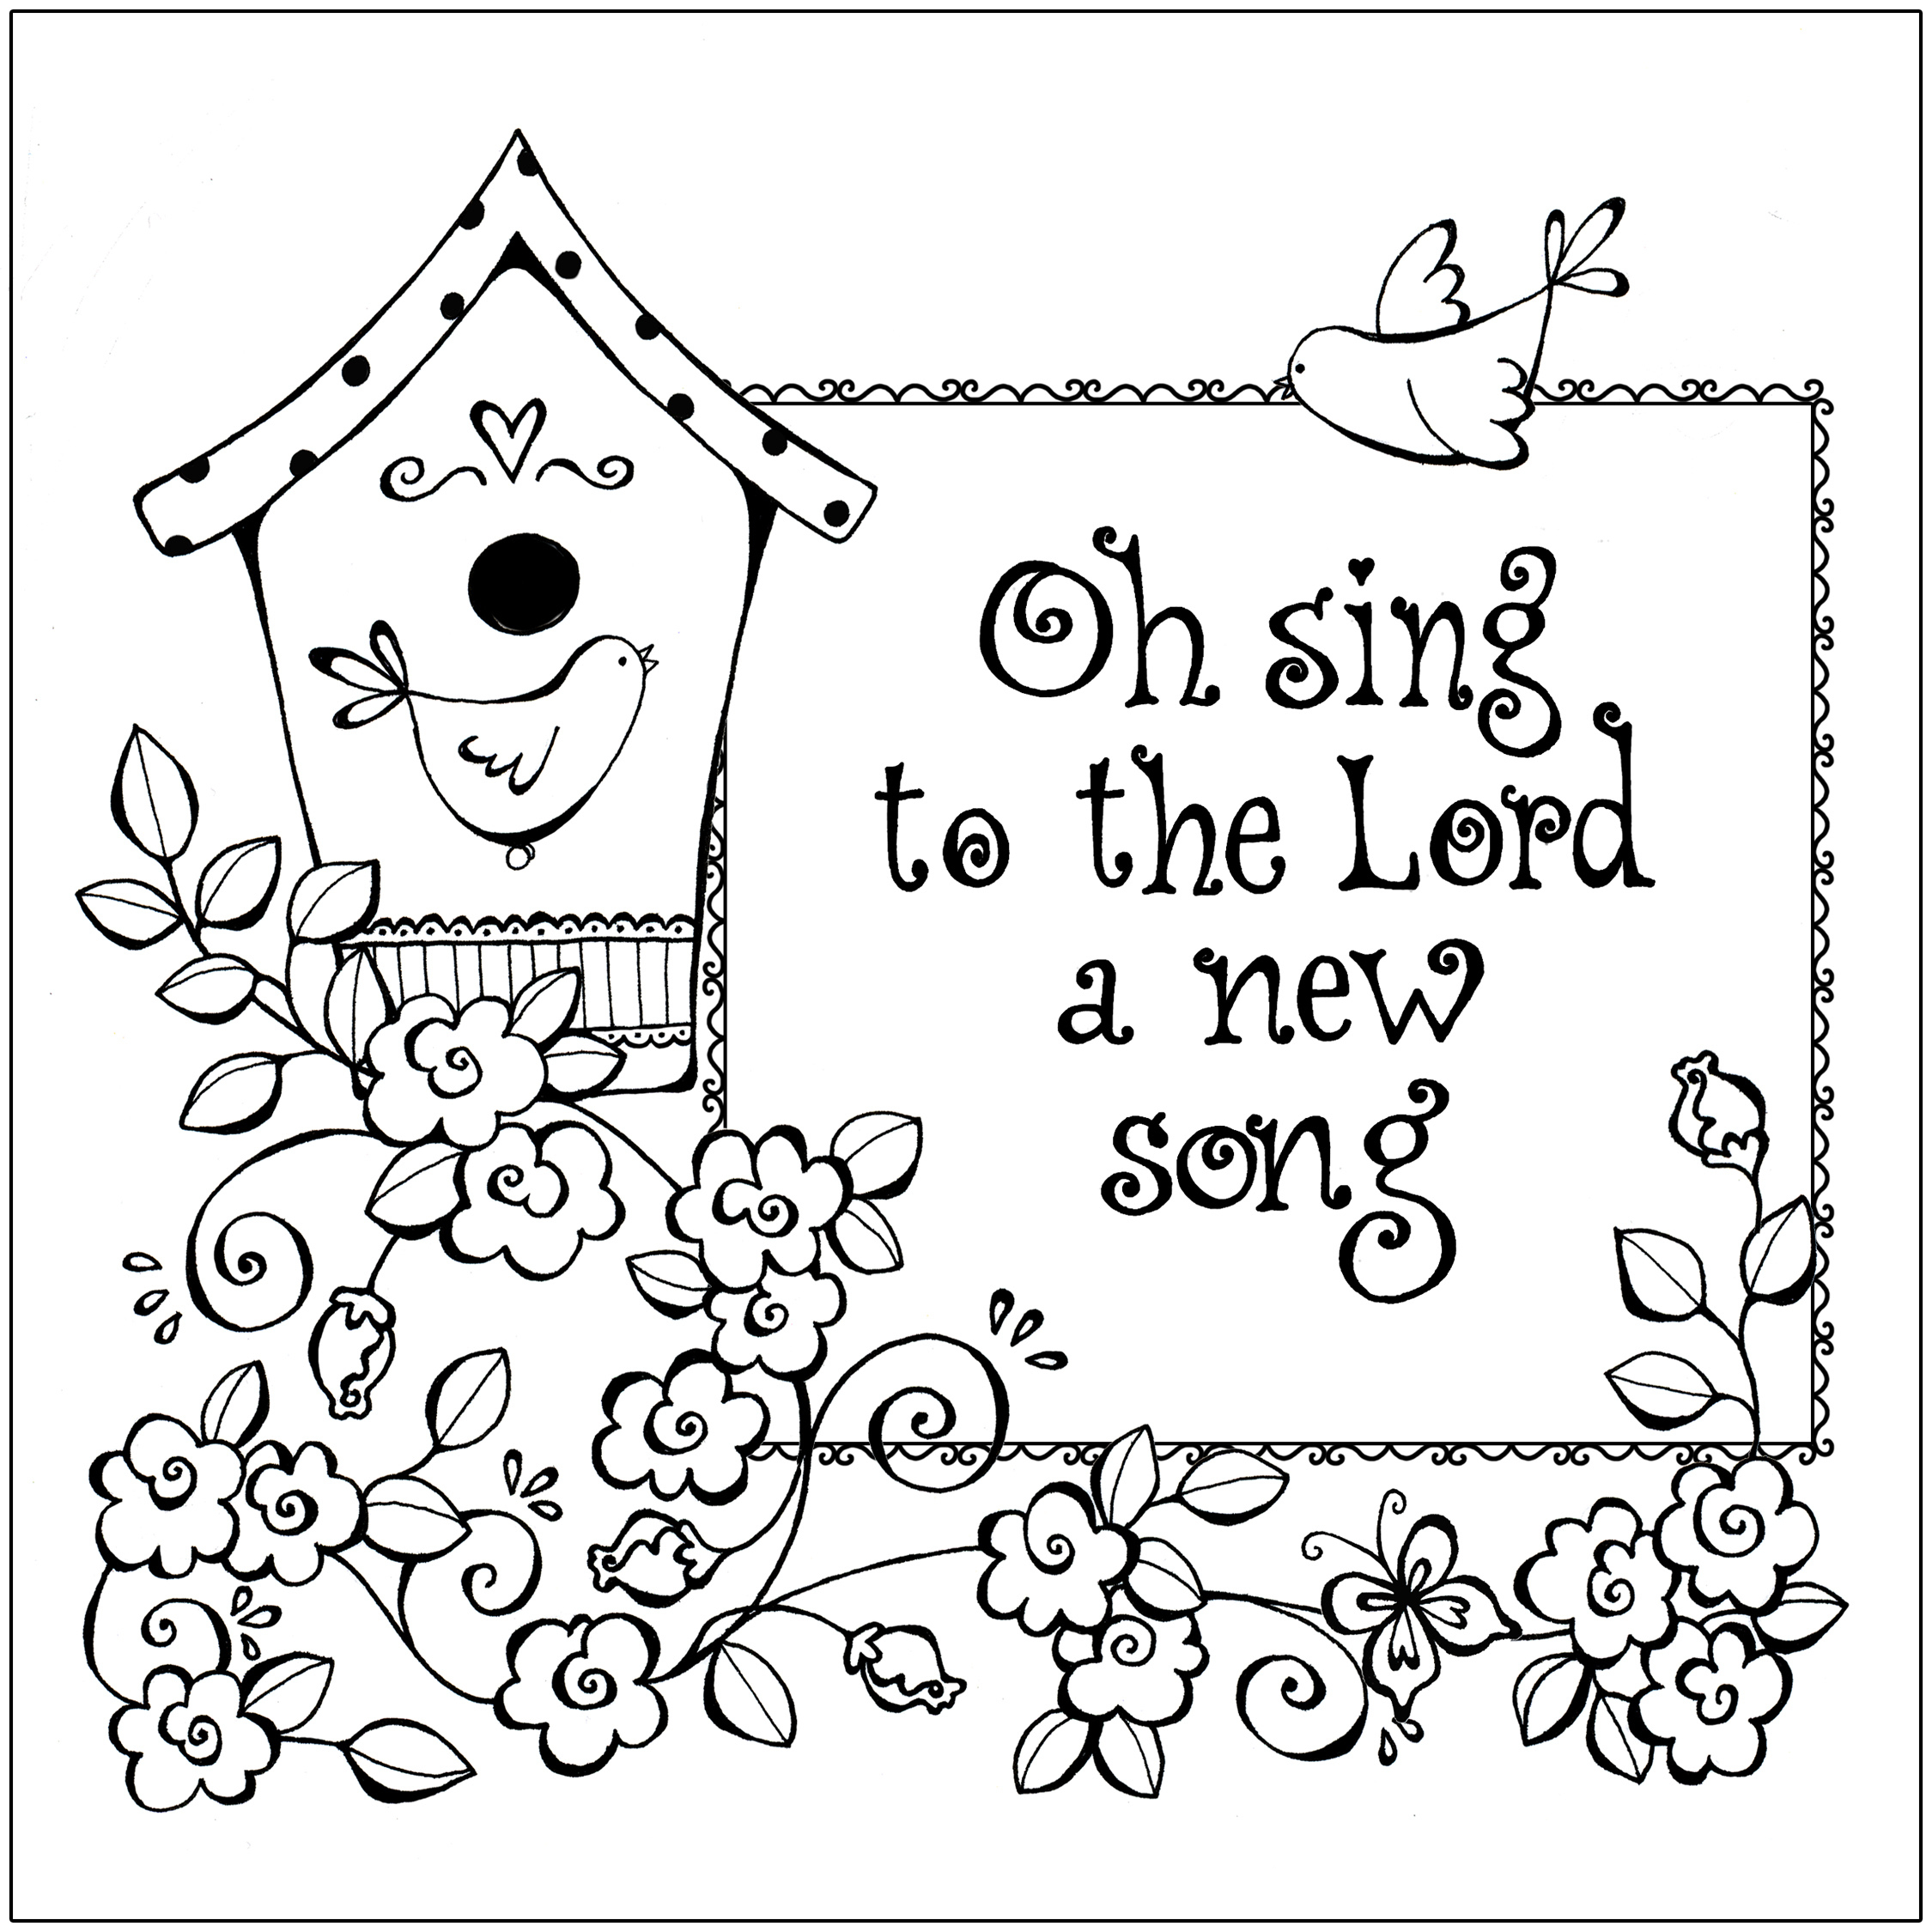 Free Printable Christian Coloring Pages For Kids - Best Coloring - Free Printable Sunday School Coloring Pages